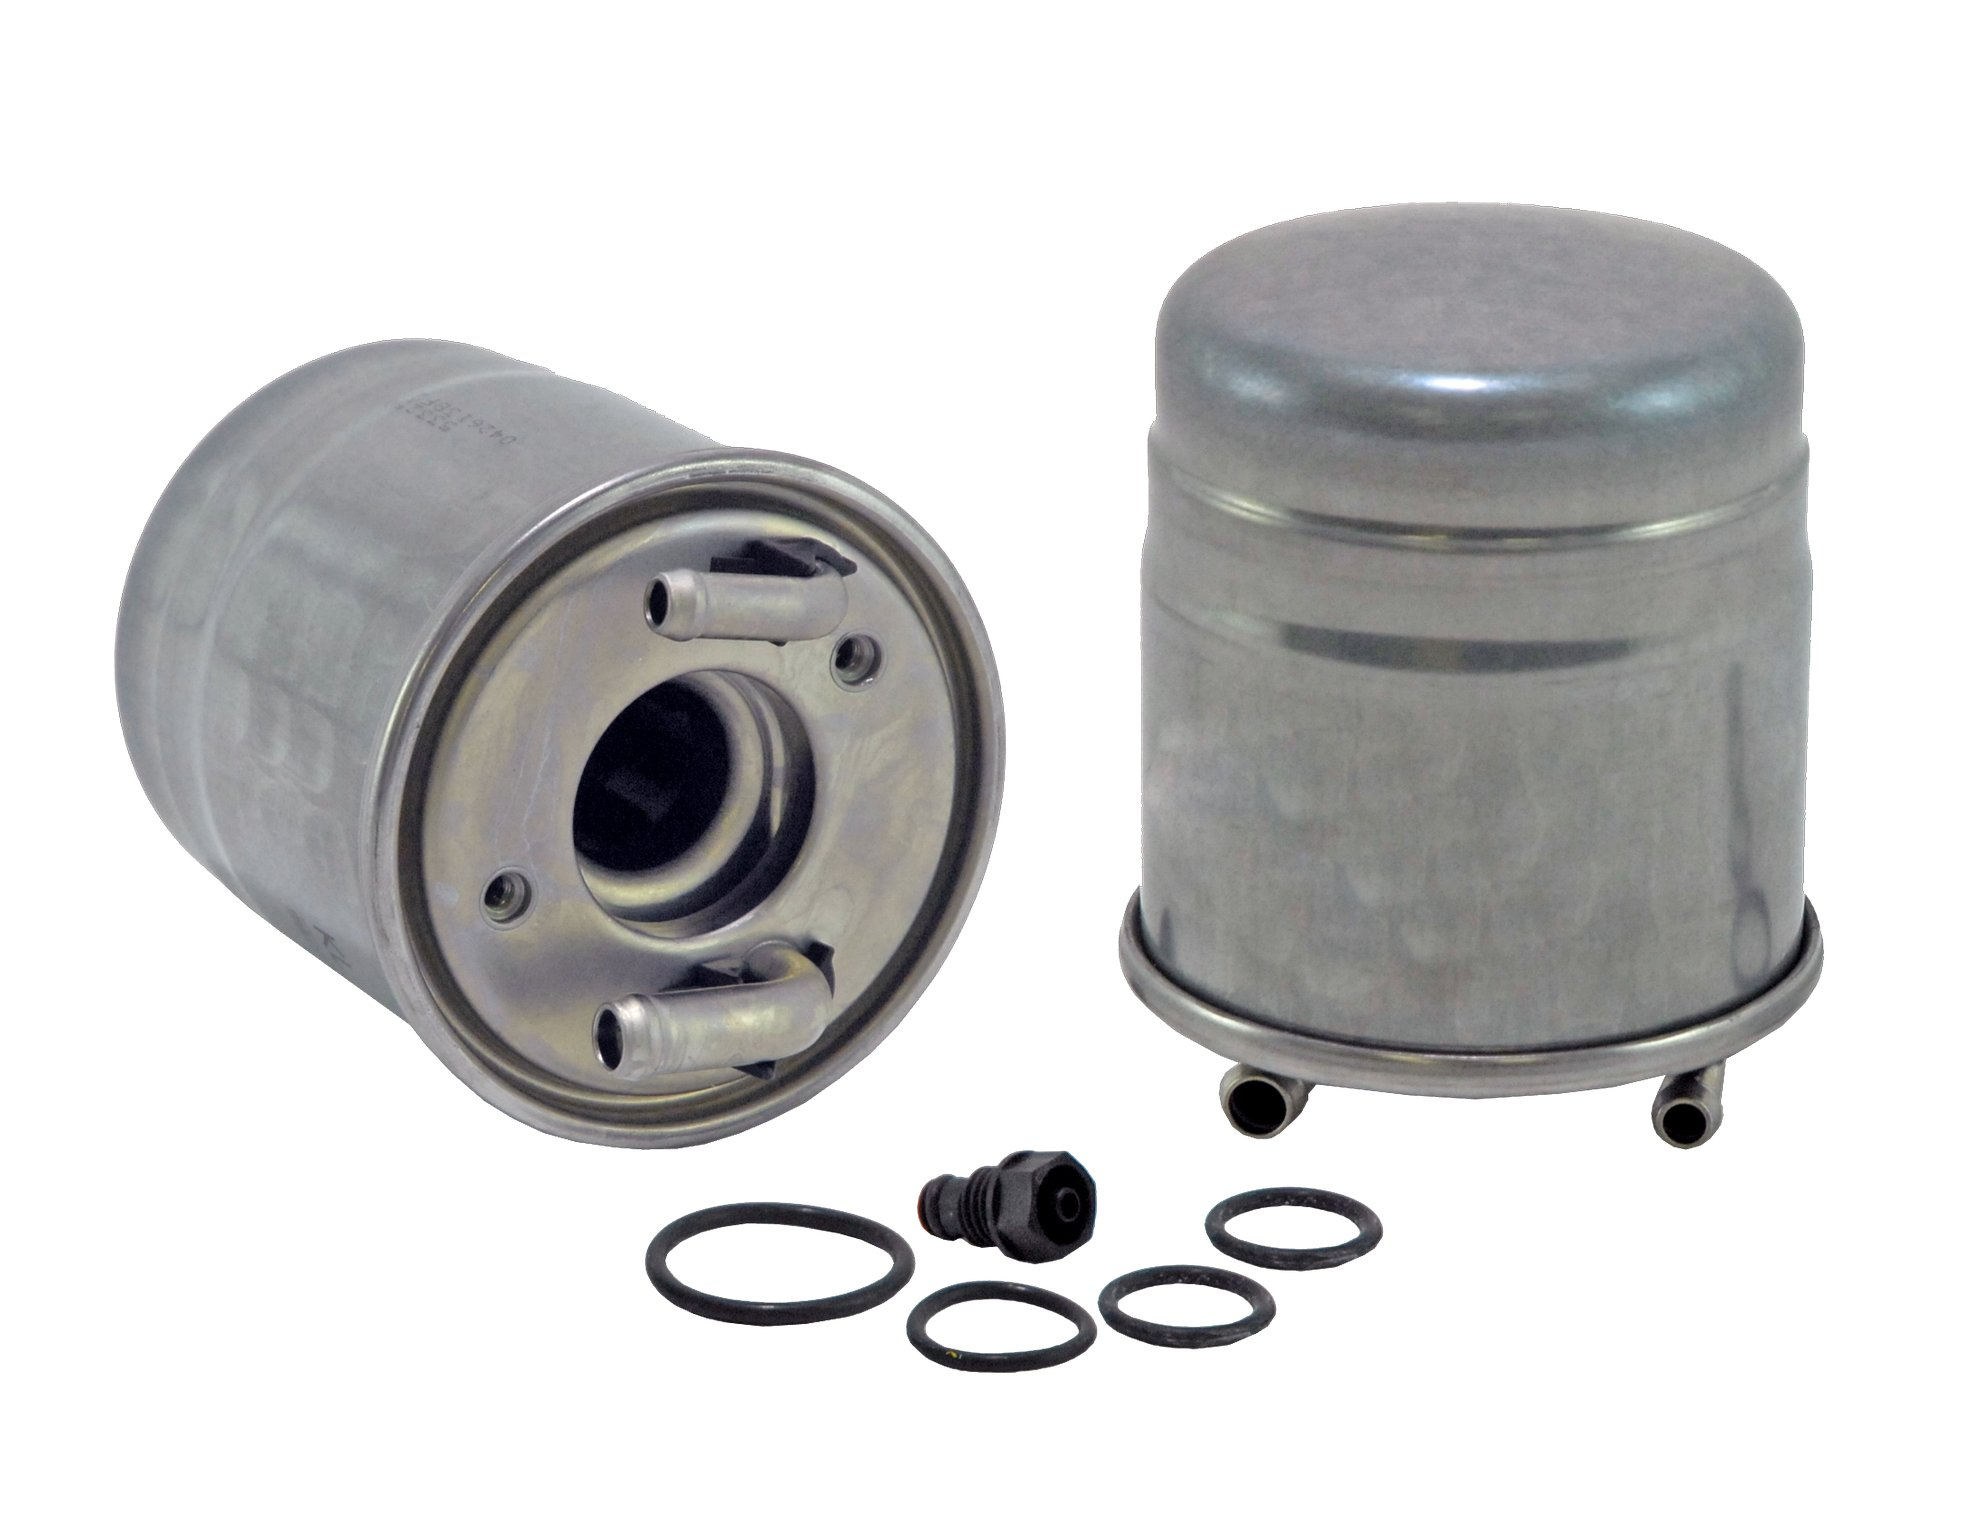 hight resolution of wix 33250 fuel filter for freightliner sprinter 2500 sprinter 3500